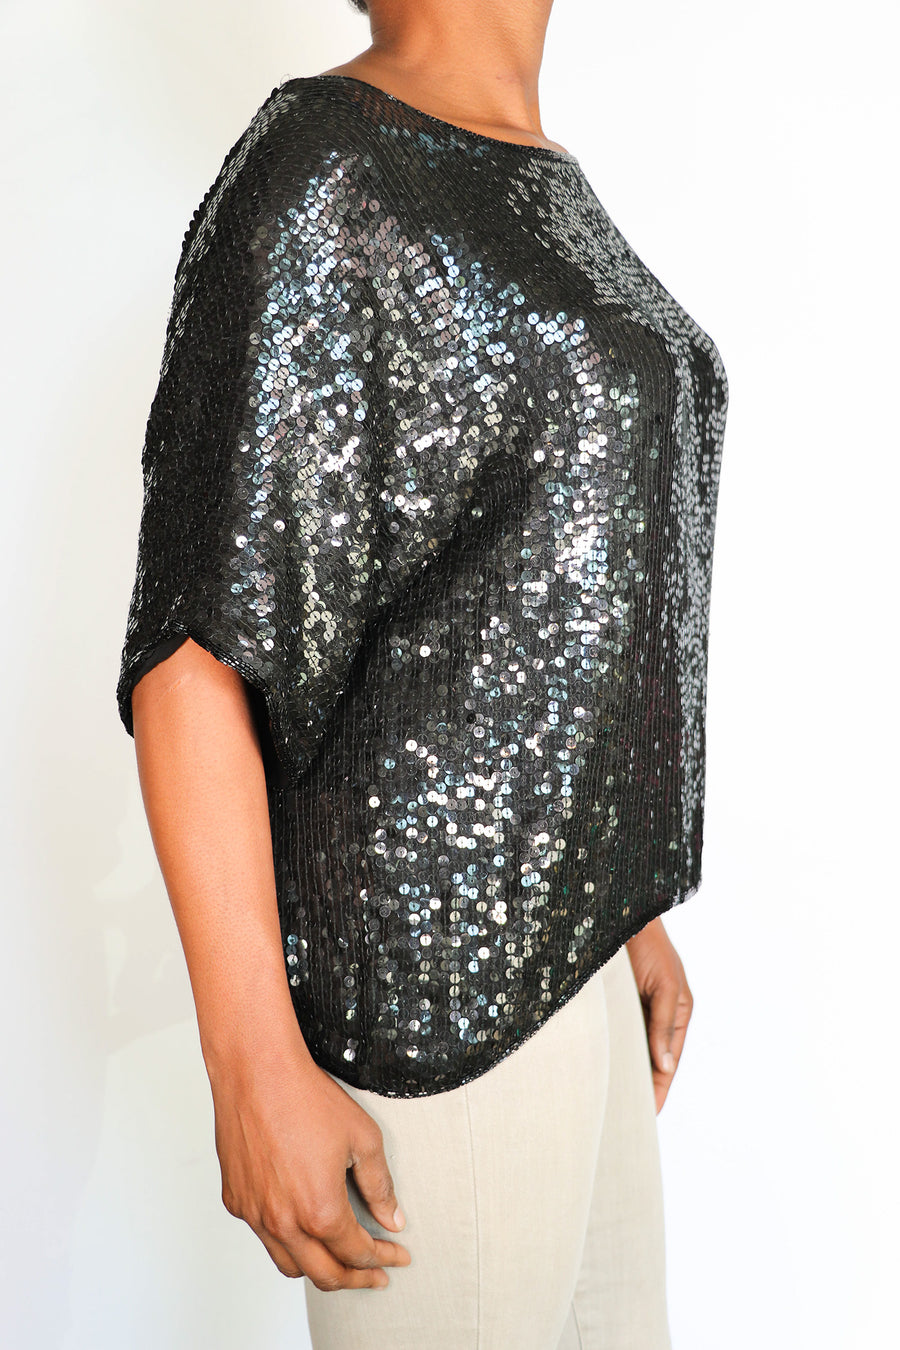 Vintage Candlelight - Sequin Top - XL